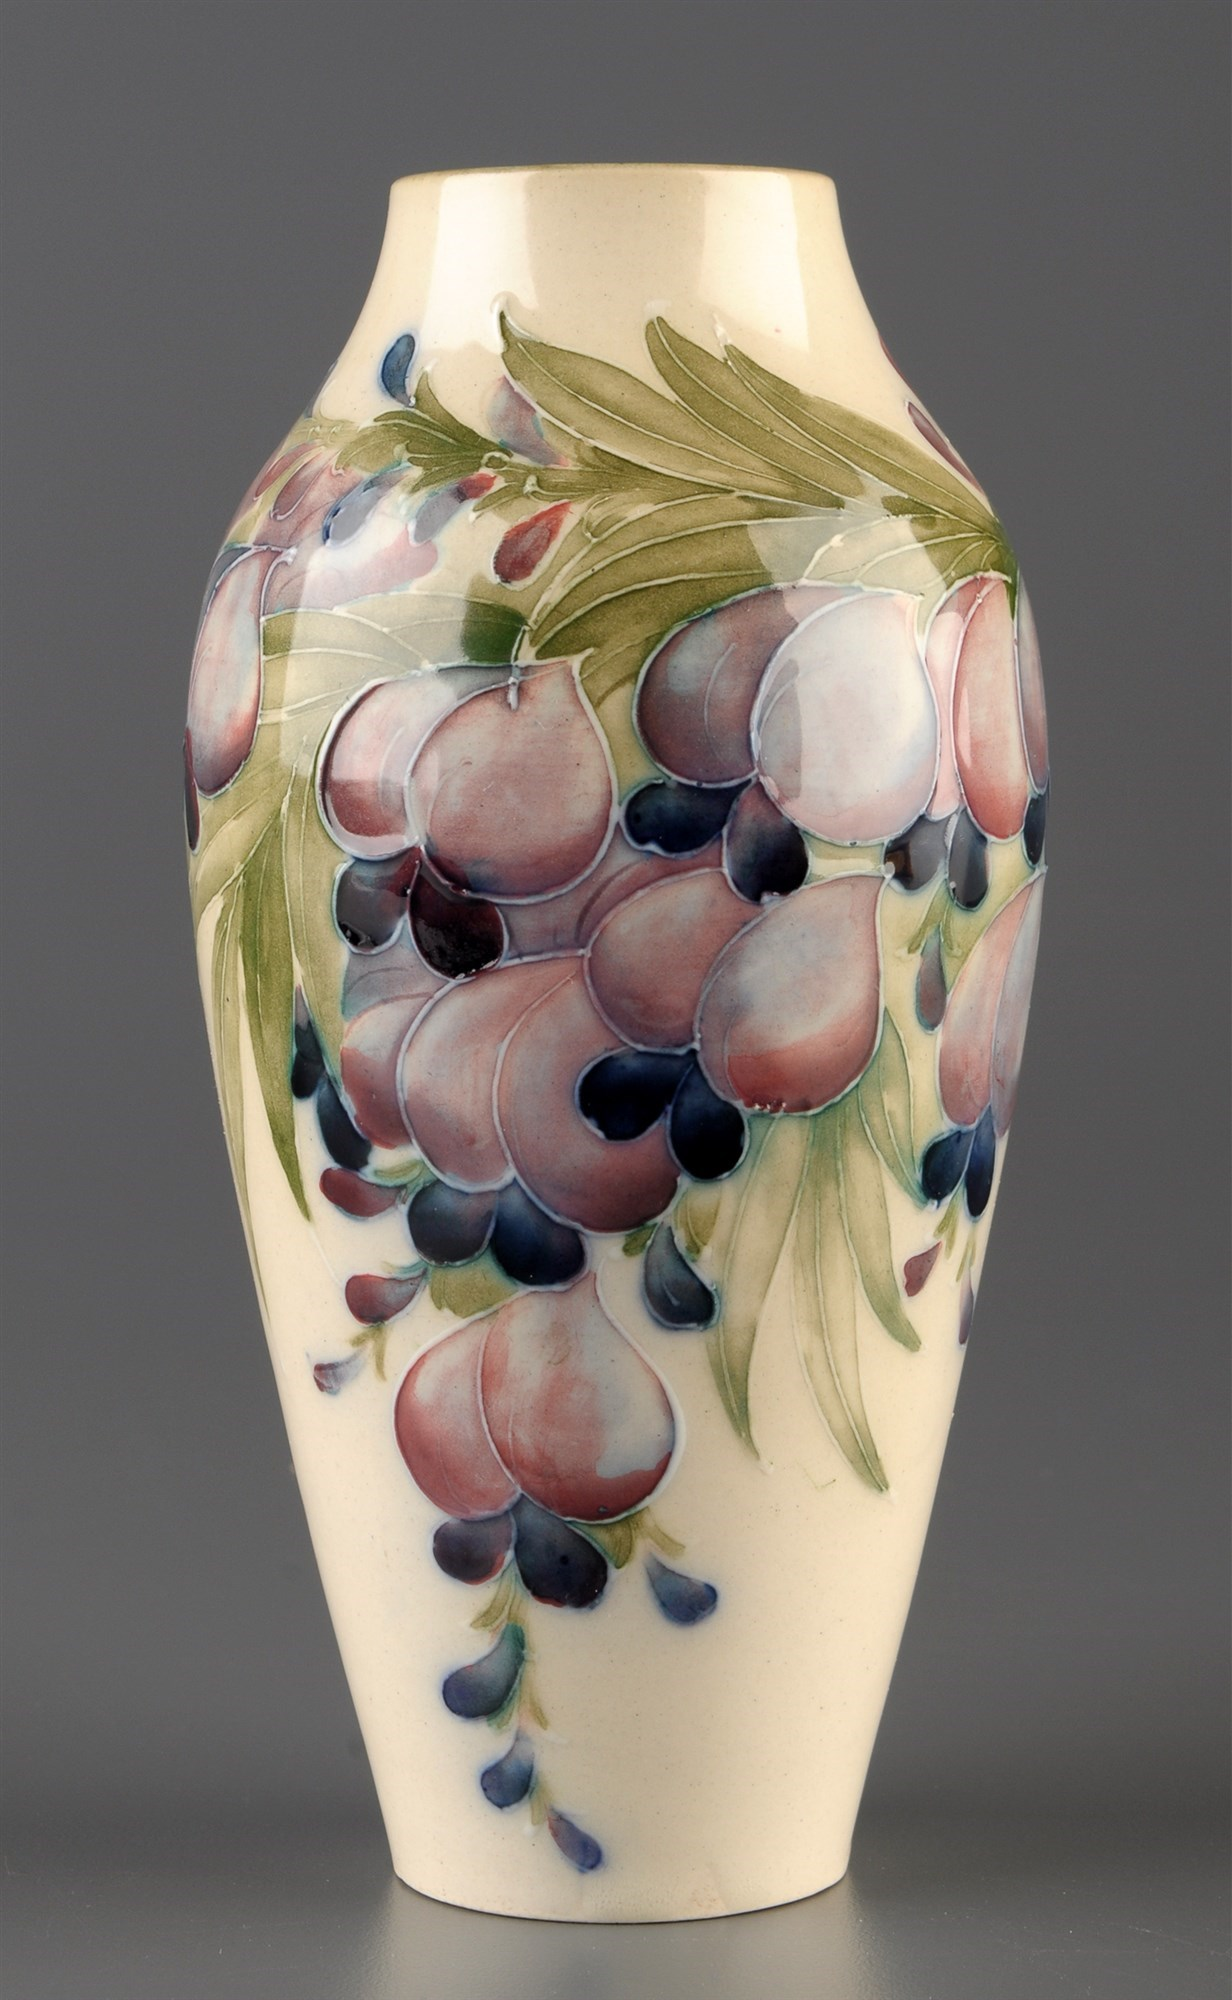 William Moorcroft for MacIntyre: a vase of baluster form, circa 1910, decorated with wisteria